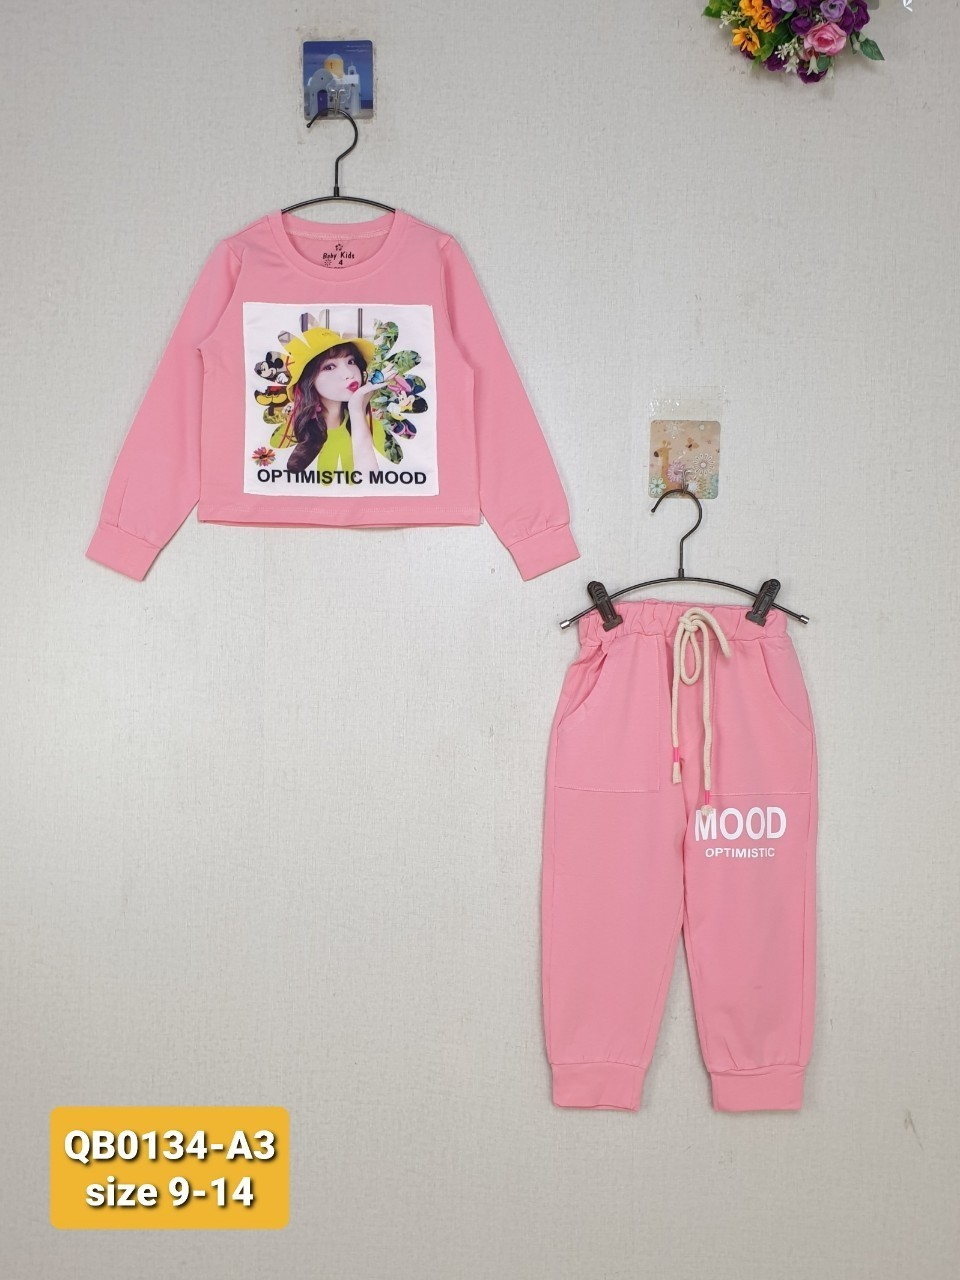 Z2797350769966 2cac81d74aa56138922896532dcfa24a B02 Vkids.vn FashionKids Made In Vietnam 9822